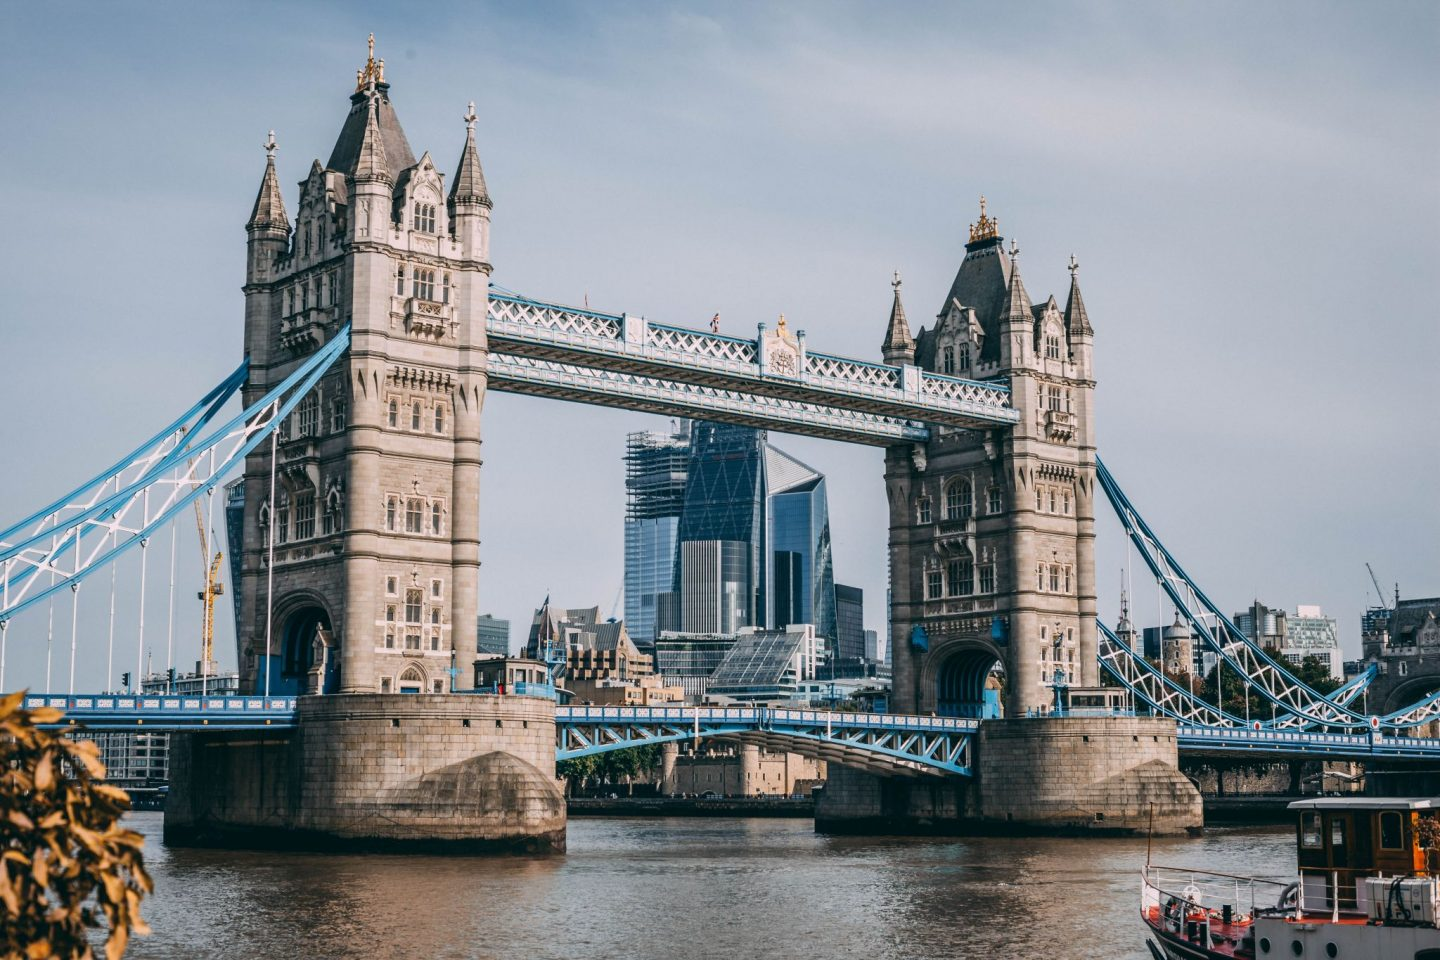 FROM SKYLINE TO BOTTOM LINE – EVERYTHING IS AMAZING IN LONDON